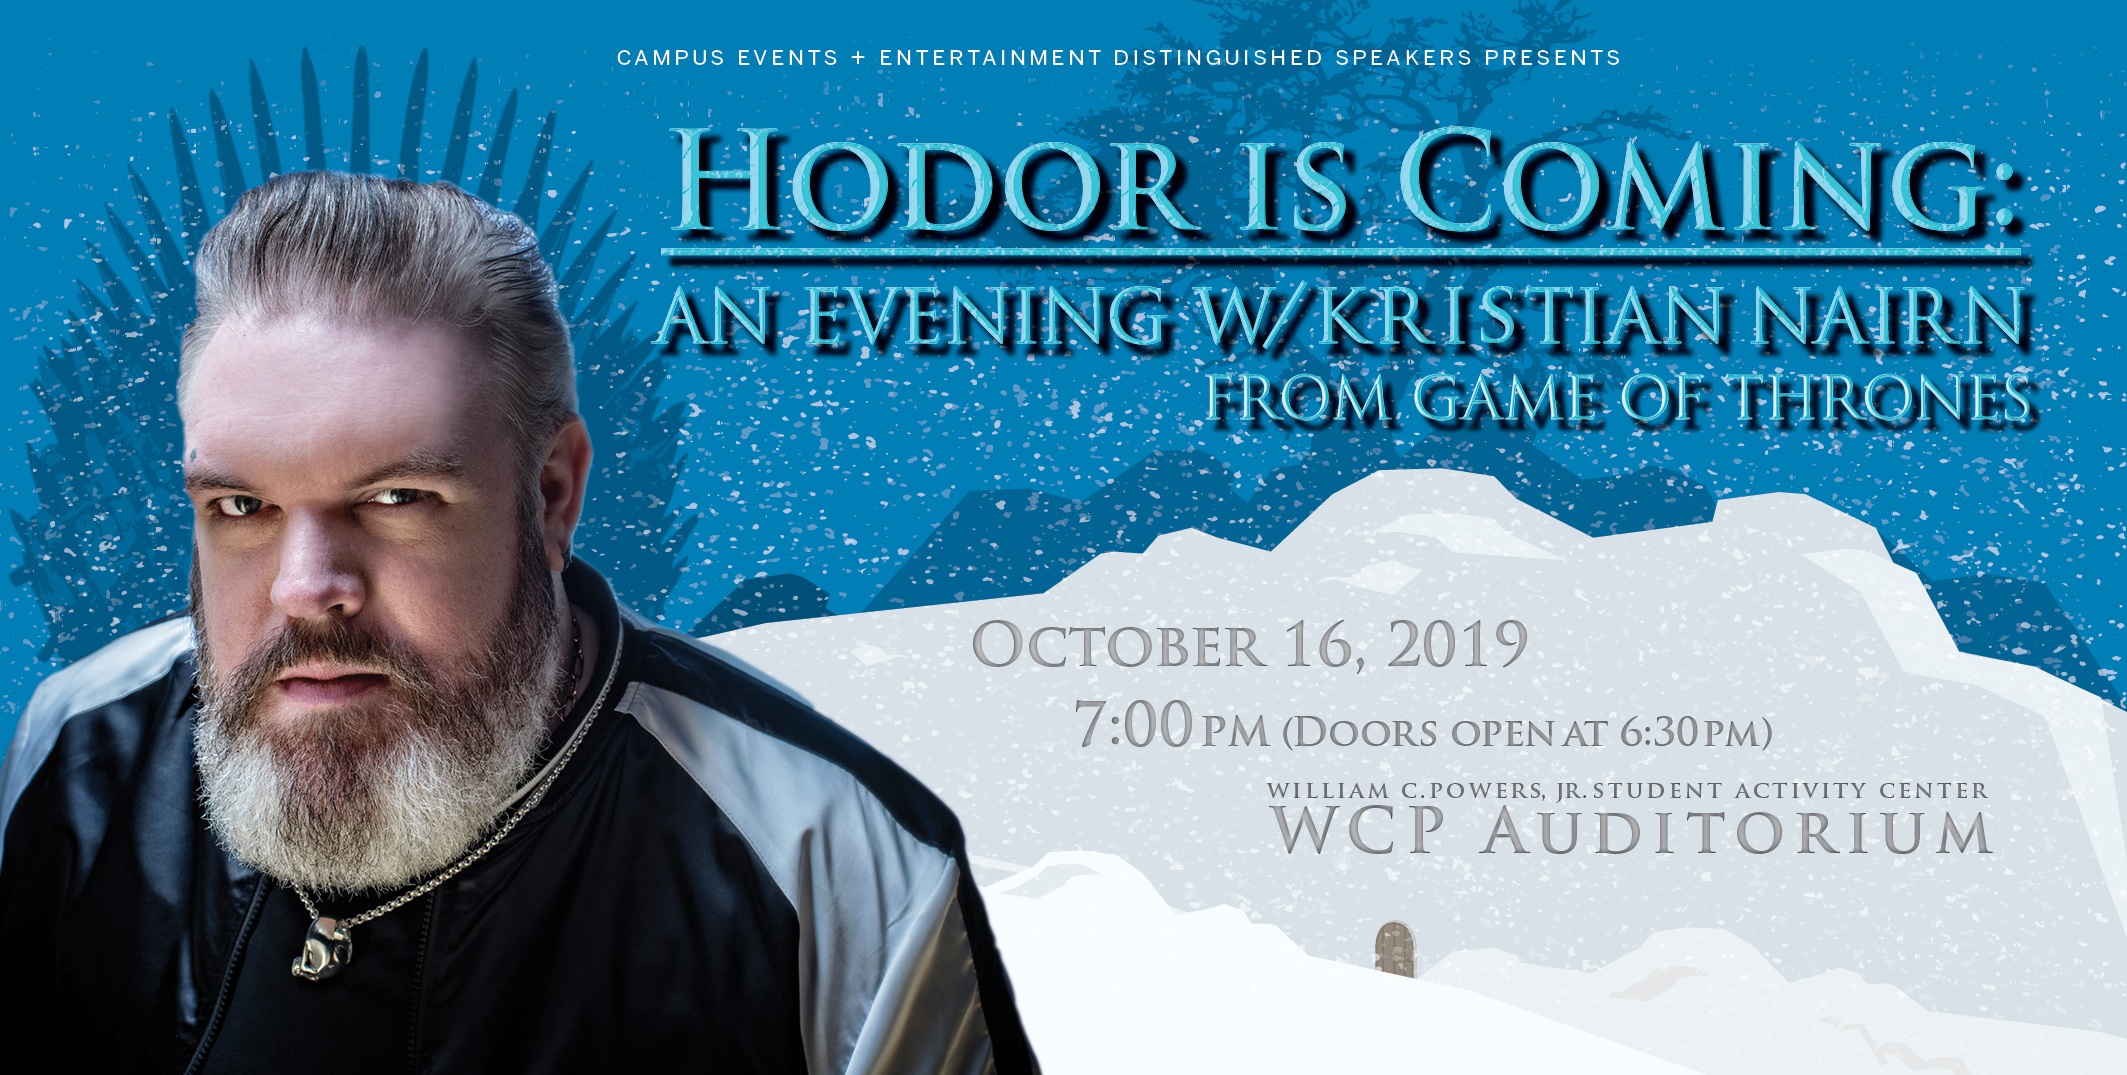 Kristian Nairn from Game of Thrones will be coming to speak at the WCP Auditorium on Wednesday October 16 at 7 pm.